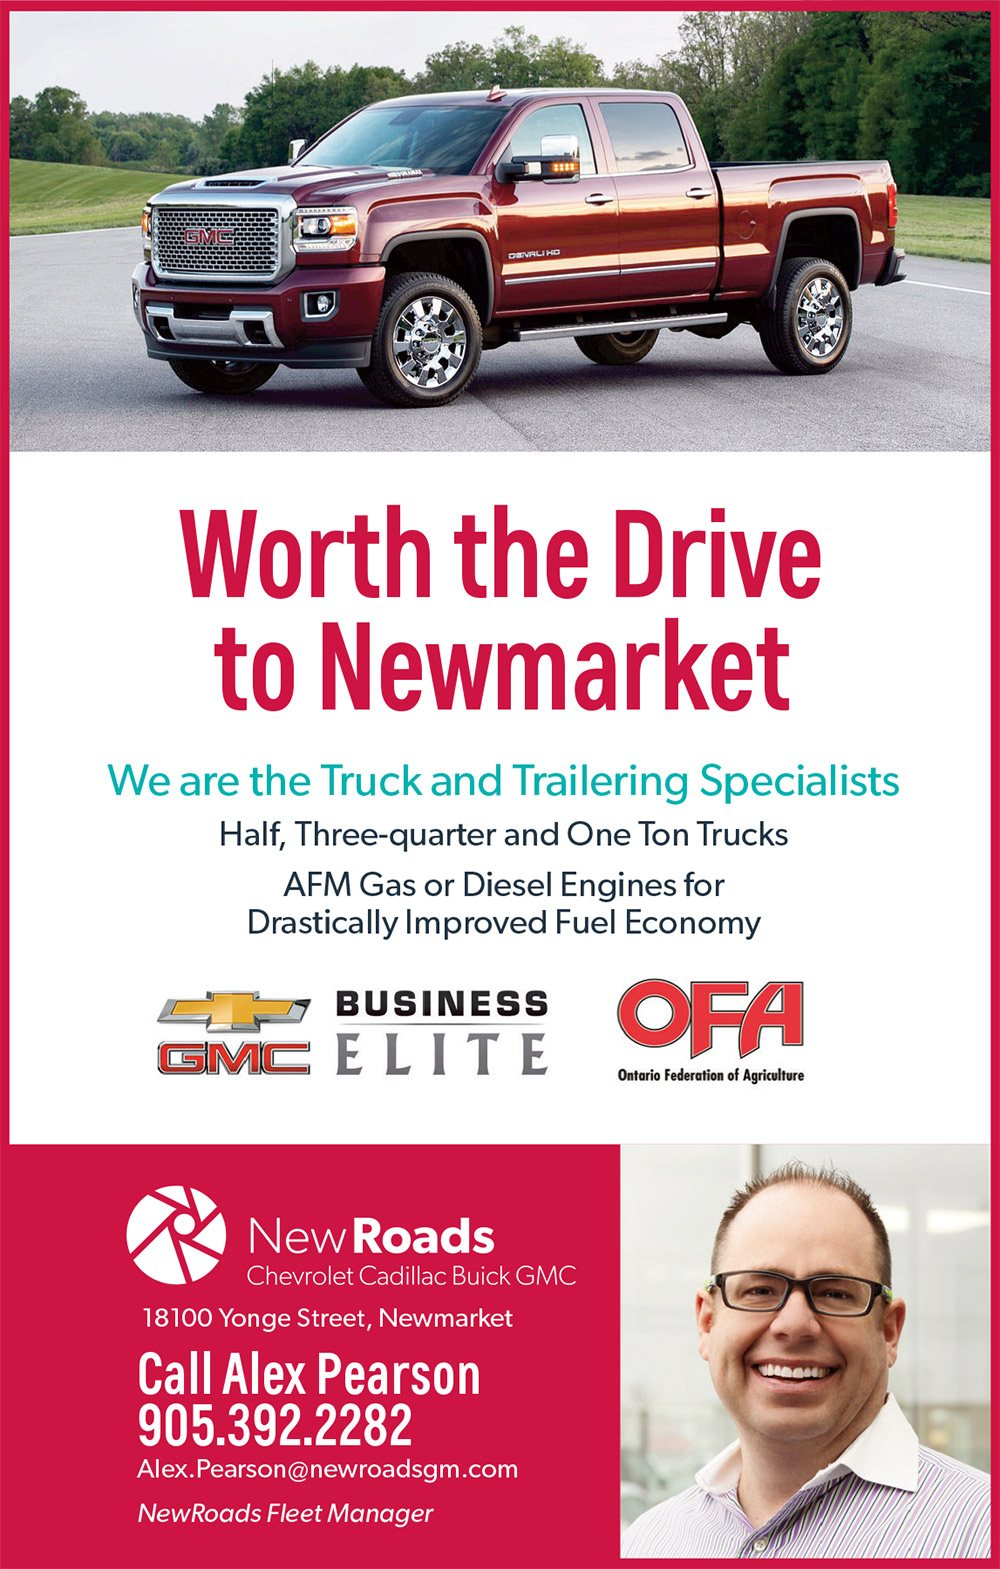 NewRoads Business Elite OFA Fleet in Newmarket